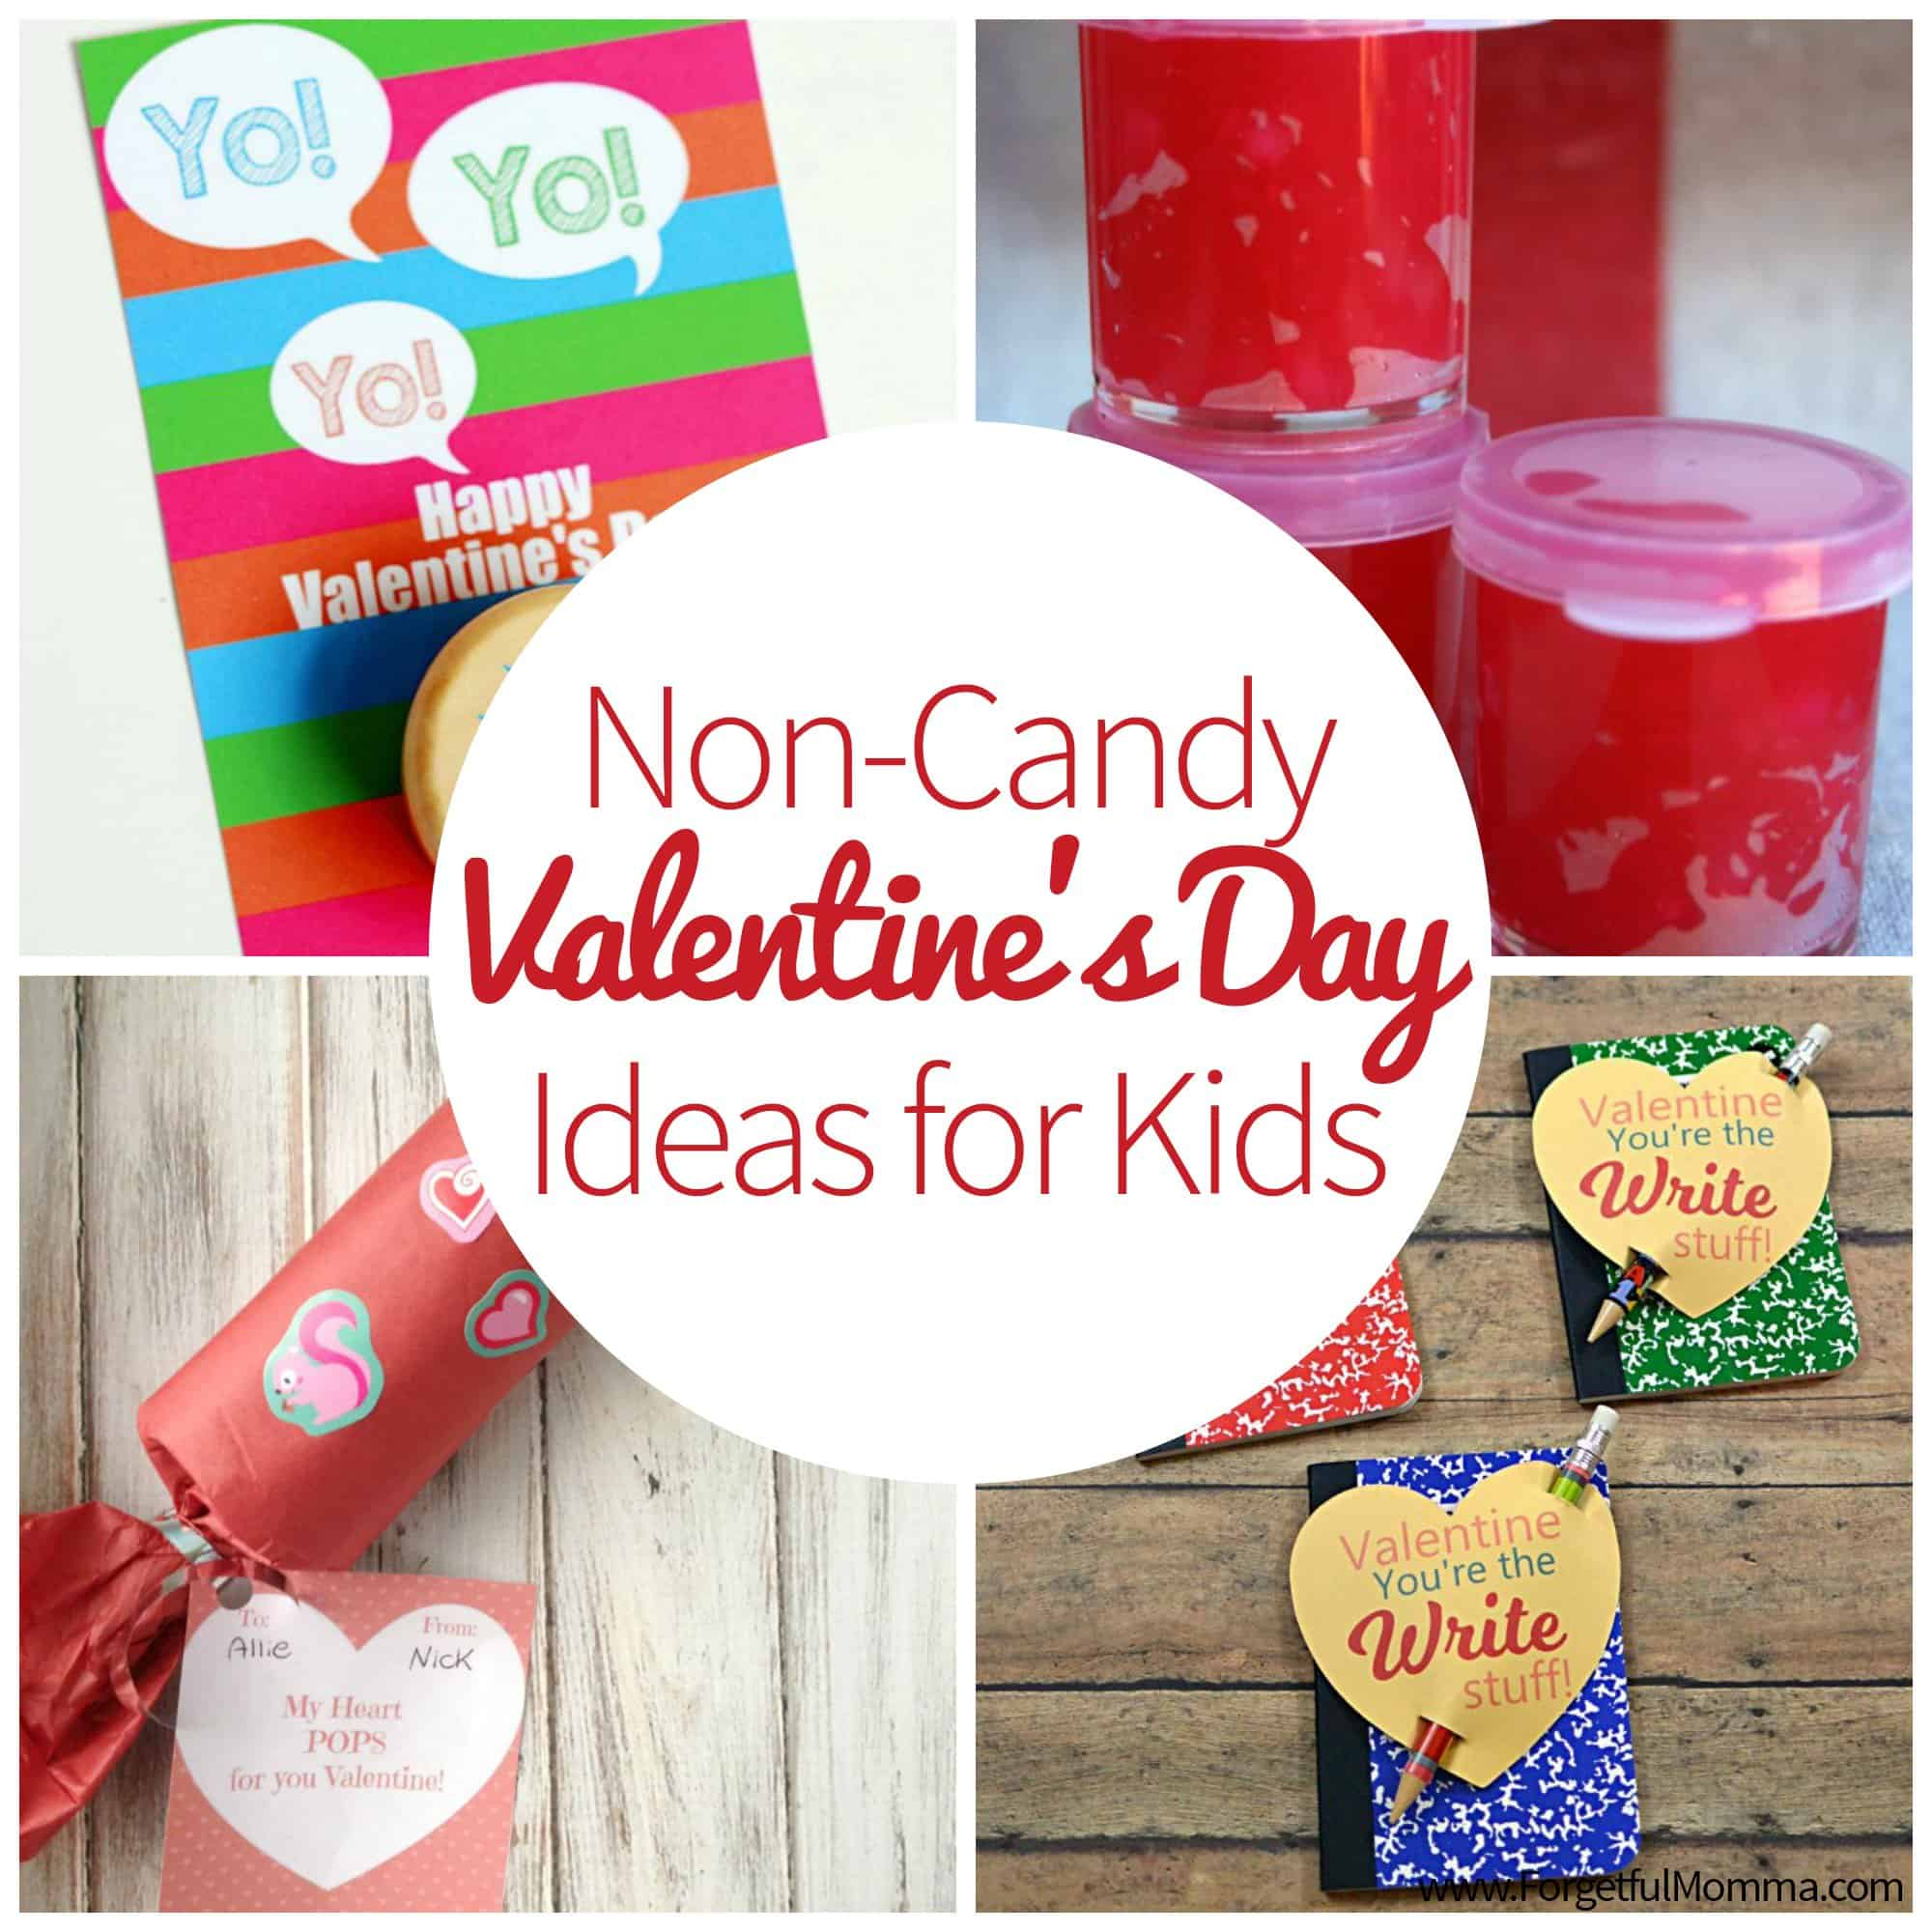 Non-Candy Valentine's Ideas for Kids to Take to School